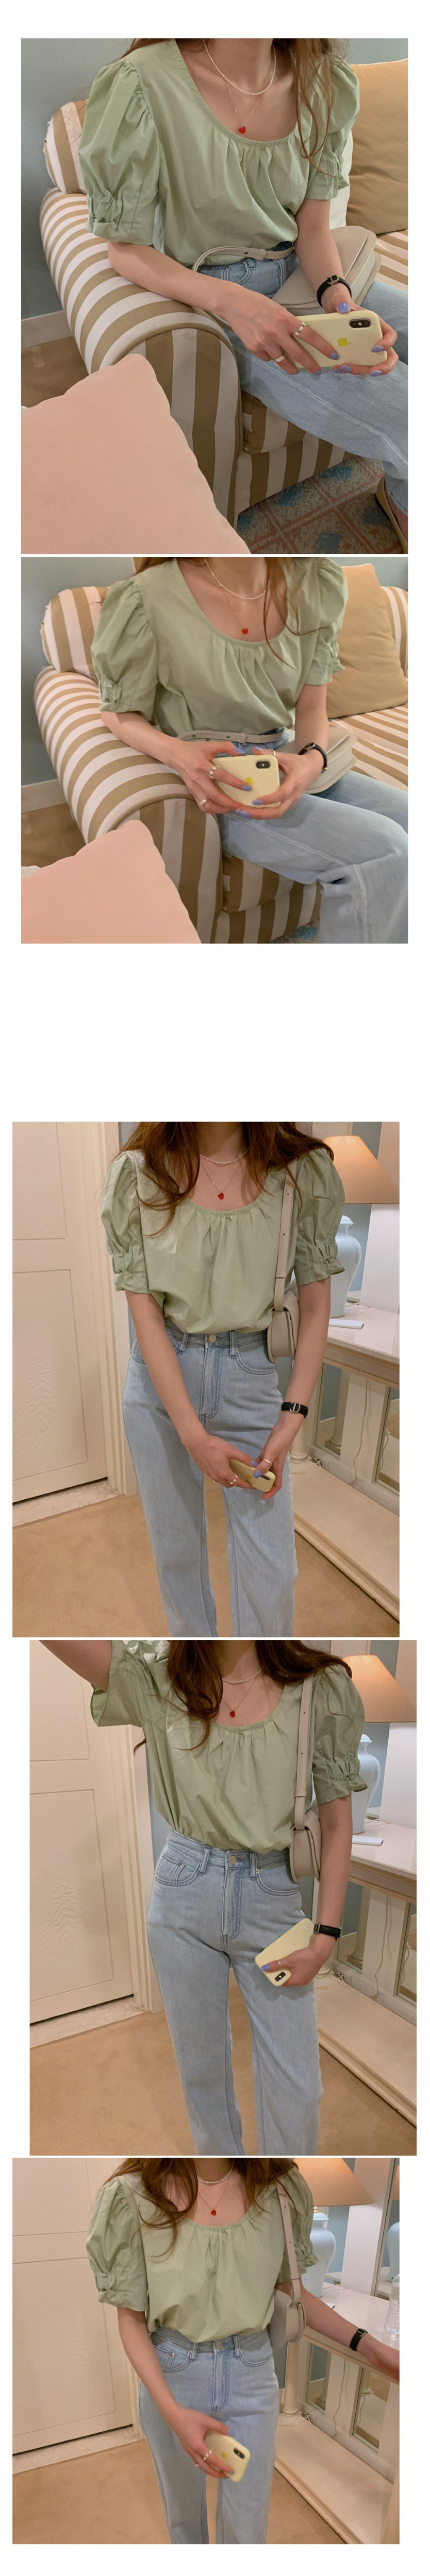 H154272a8fae647d2911e01d4248769a4F - Summer O-Neck Short Puff Sleeves Cotton Loose Solid Blouse